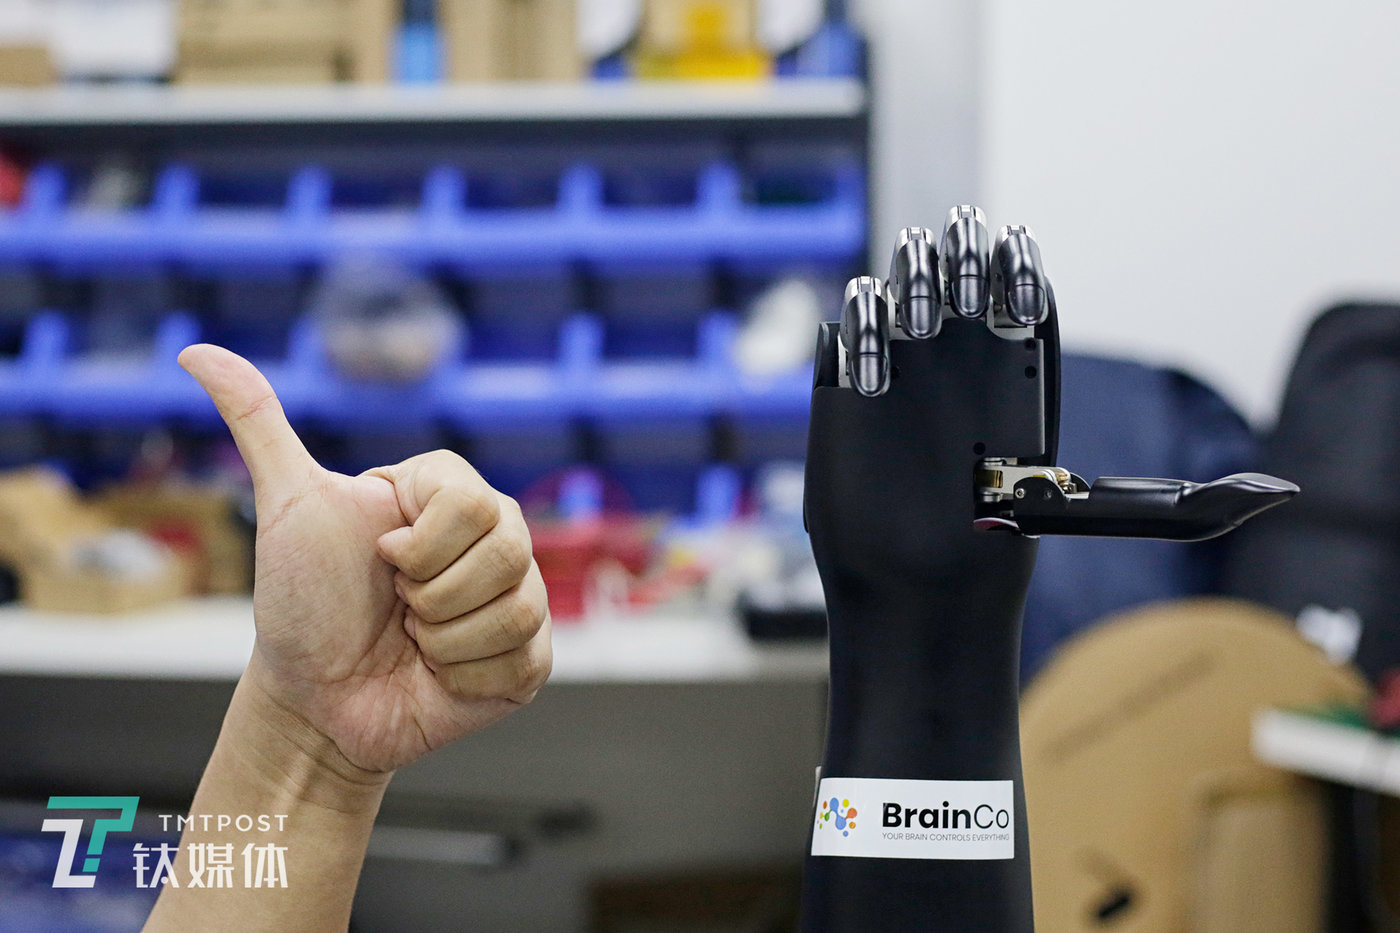 24 April, Shenzhen. Huang Qi demonstrates to TMTPOST Image how the prosthetic hand is controlled using myoelectric signals. This is a third generation BrianRobotics model. At the time, the fourth generation model was already being tested on the production line for trial mass production.